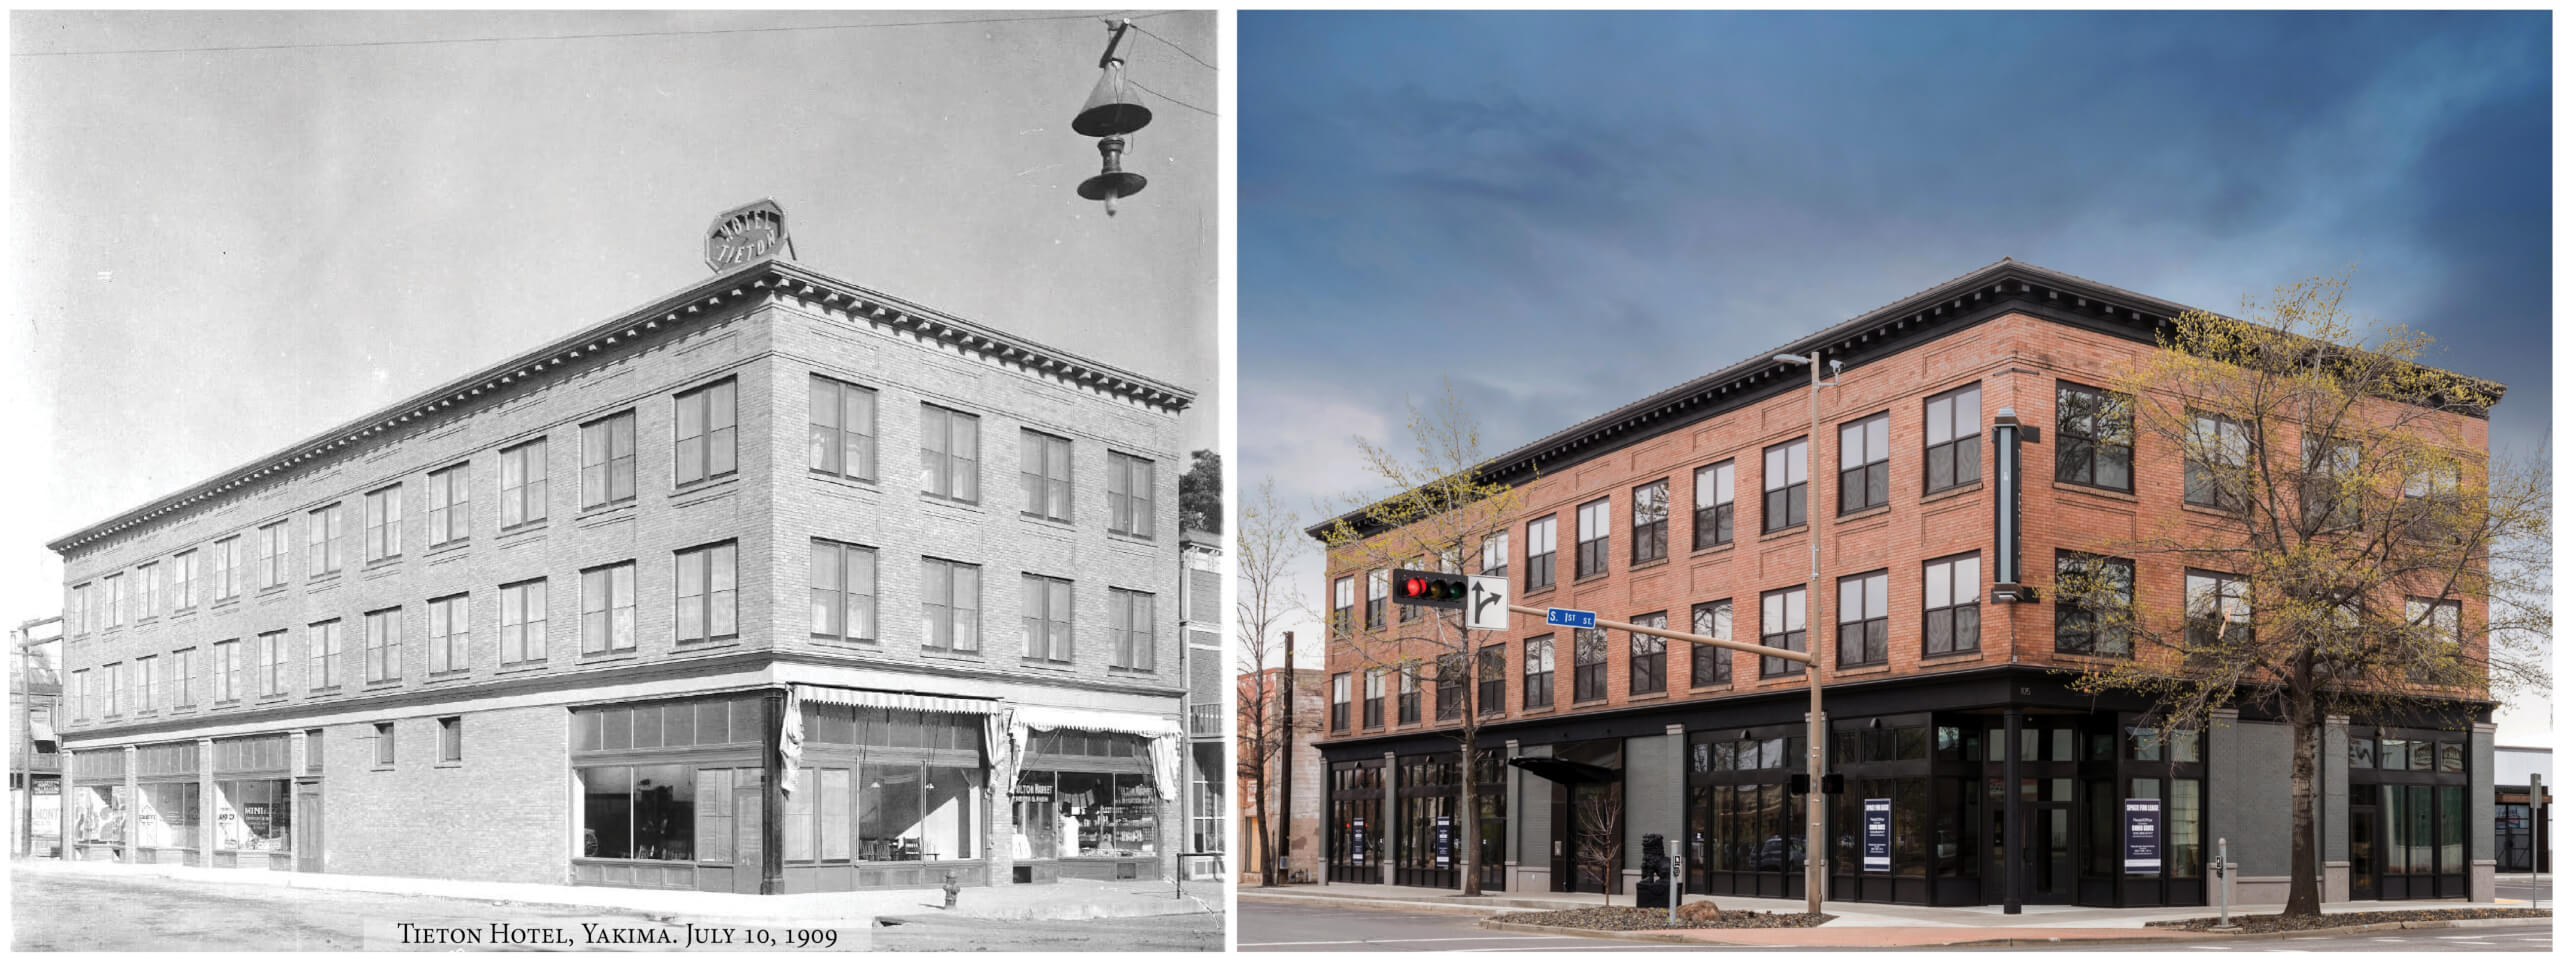 1909 Tieton Hotel and 2018 Tieton Mixed Use